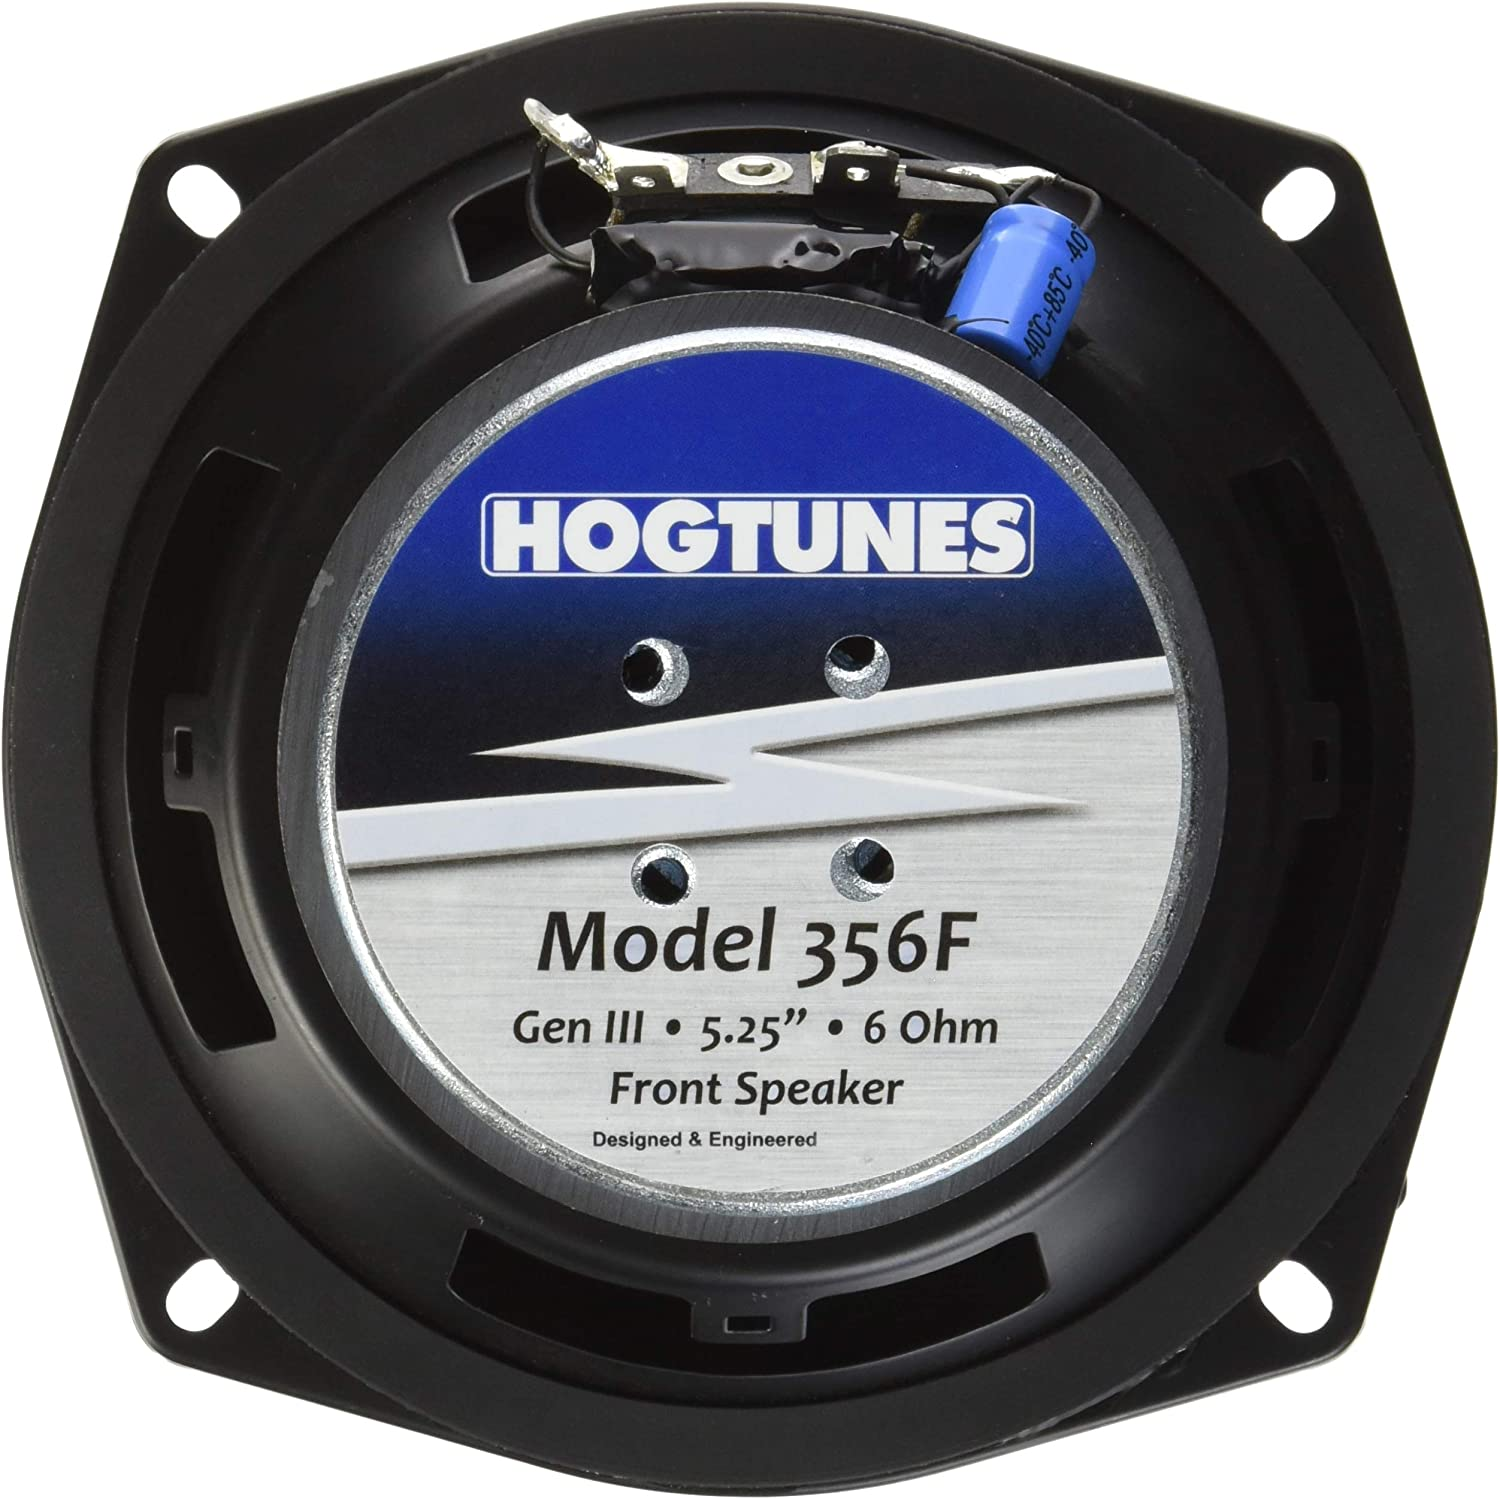 Gen3 5.25 for 1996-2005 Harley-Davidson FLH Touring Models Hogtunes 356F Replacement Front Speaker